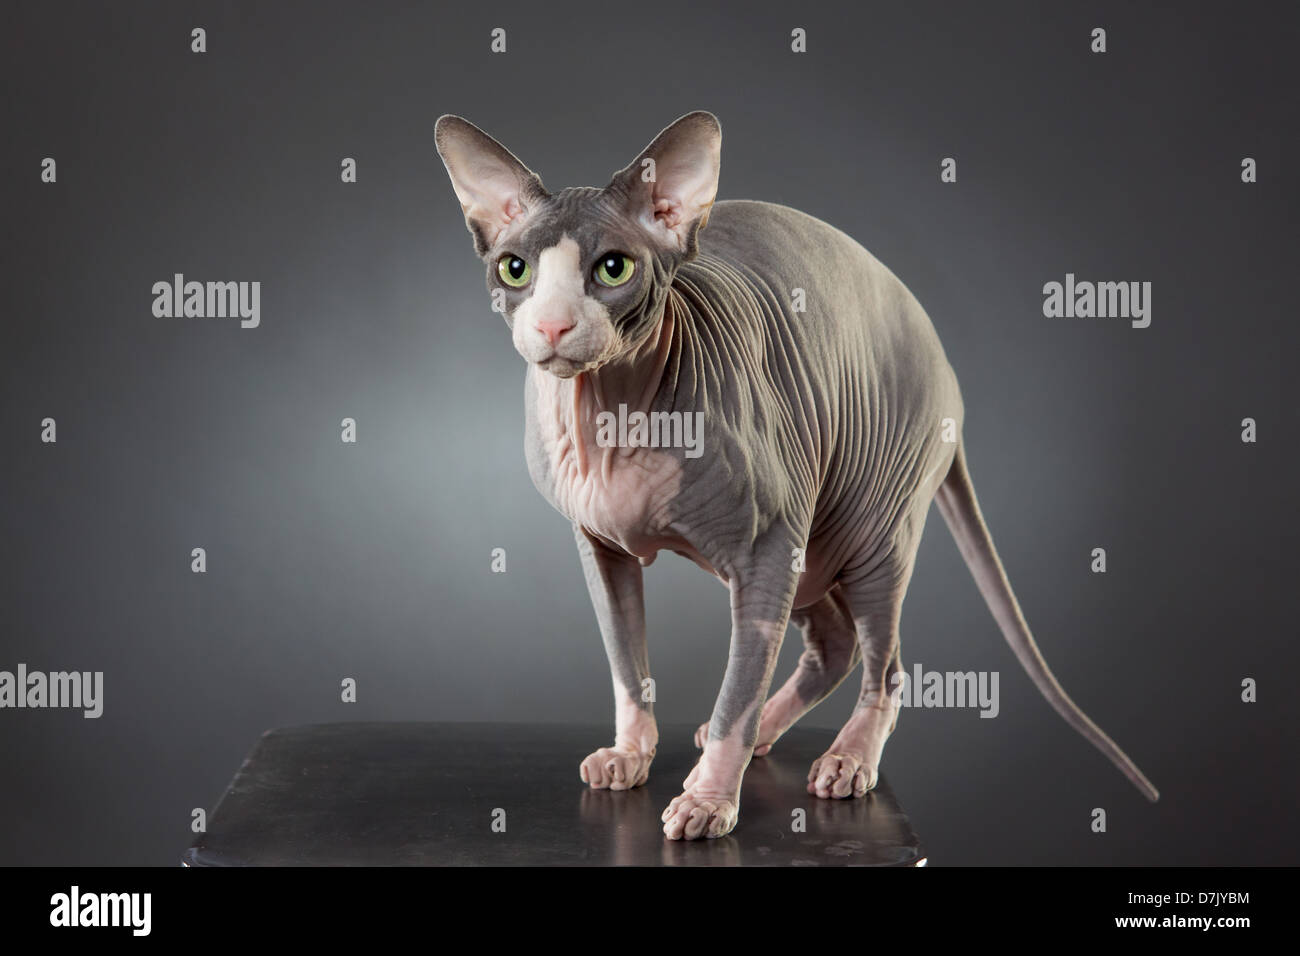 Portrait of alert hairless pale gray Spinx cat standing posed in studio - Stock Image